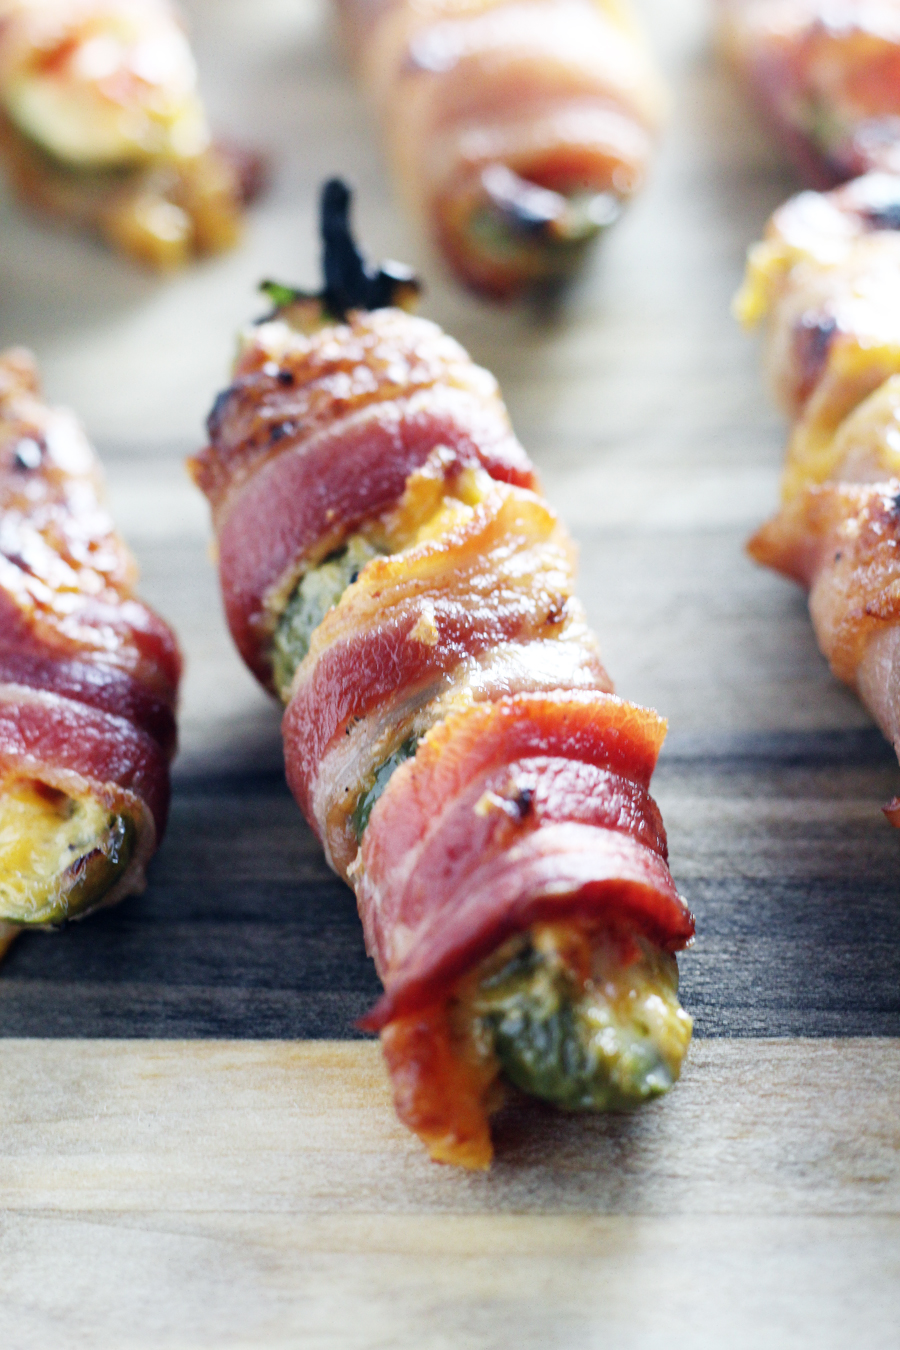 A jalapeno pepper stuffed with pimento cheese and wrapped in bacon